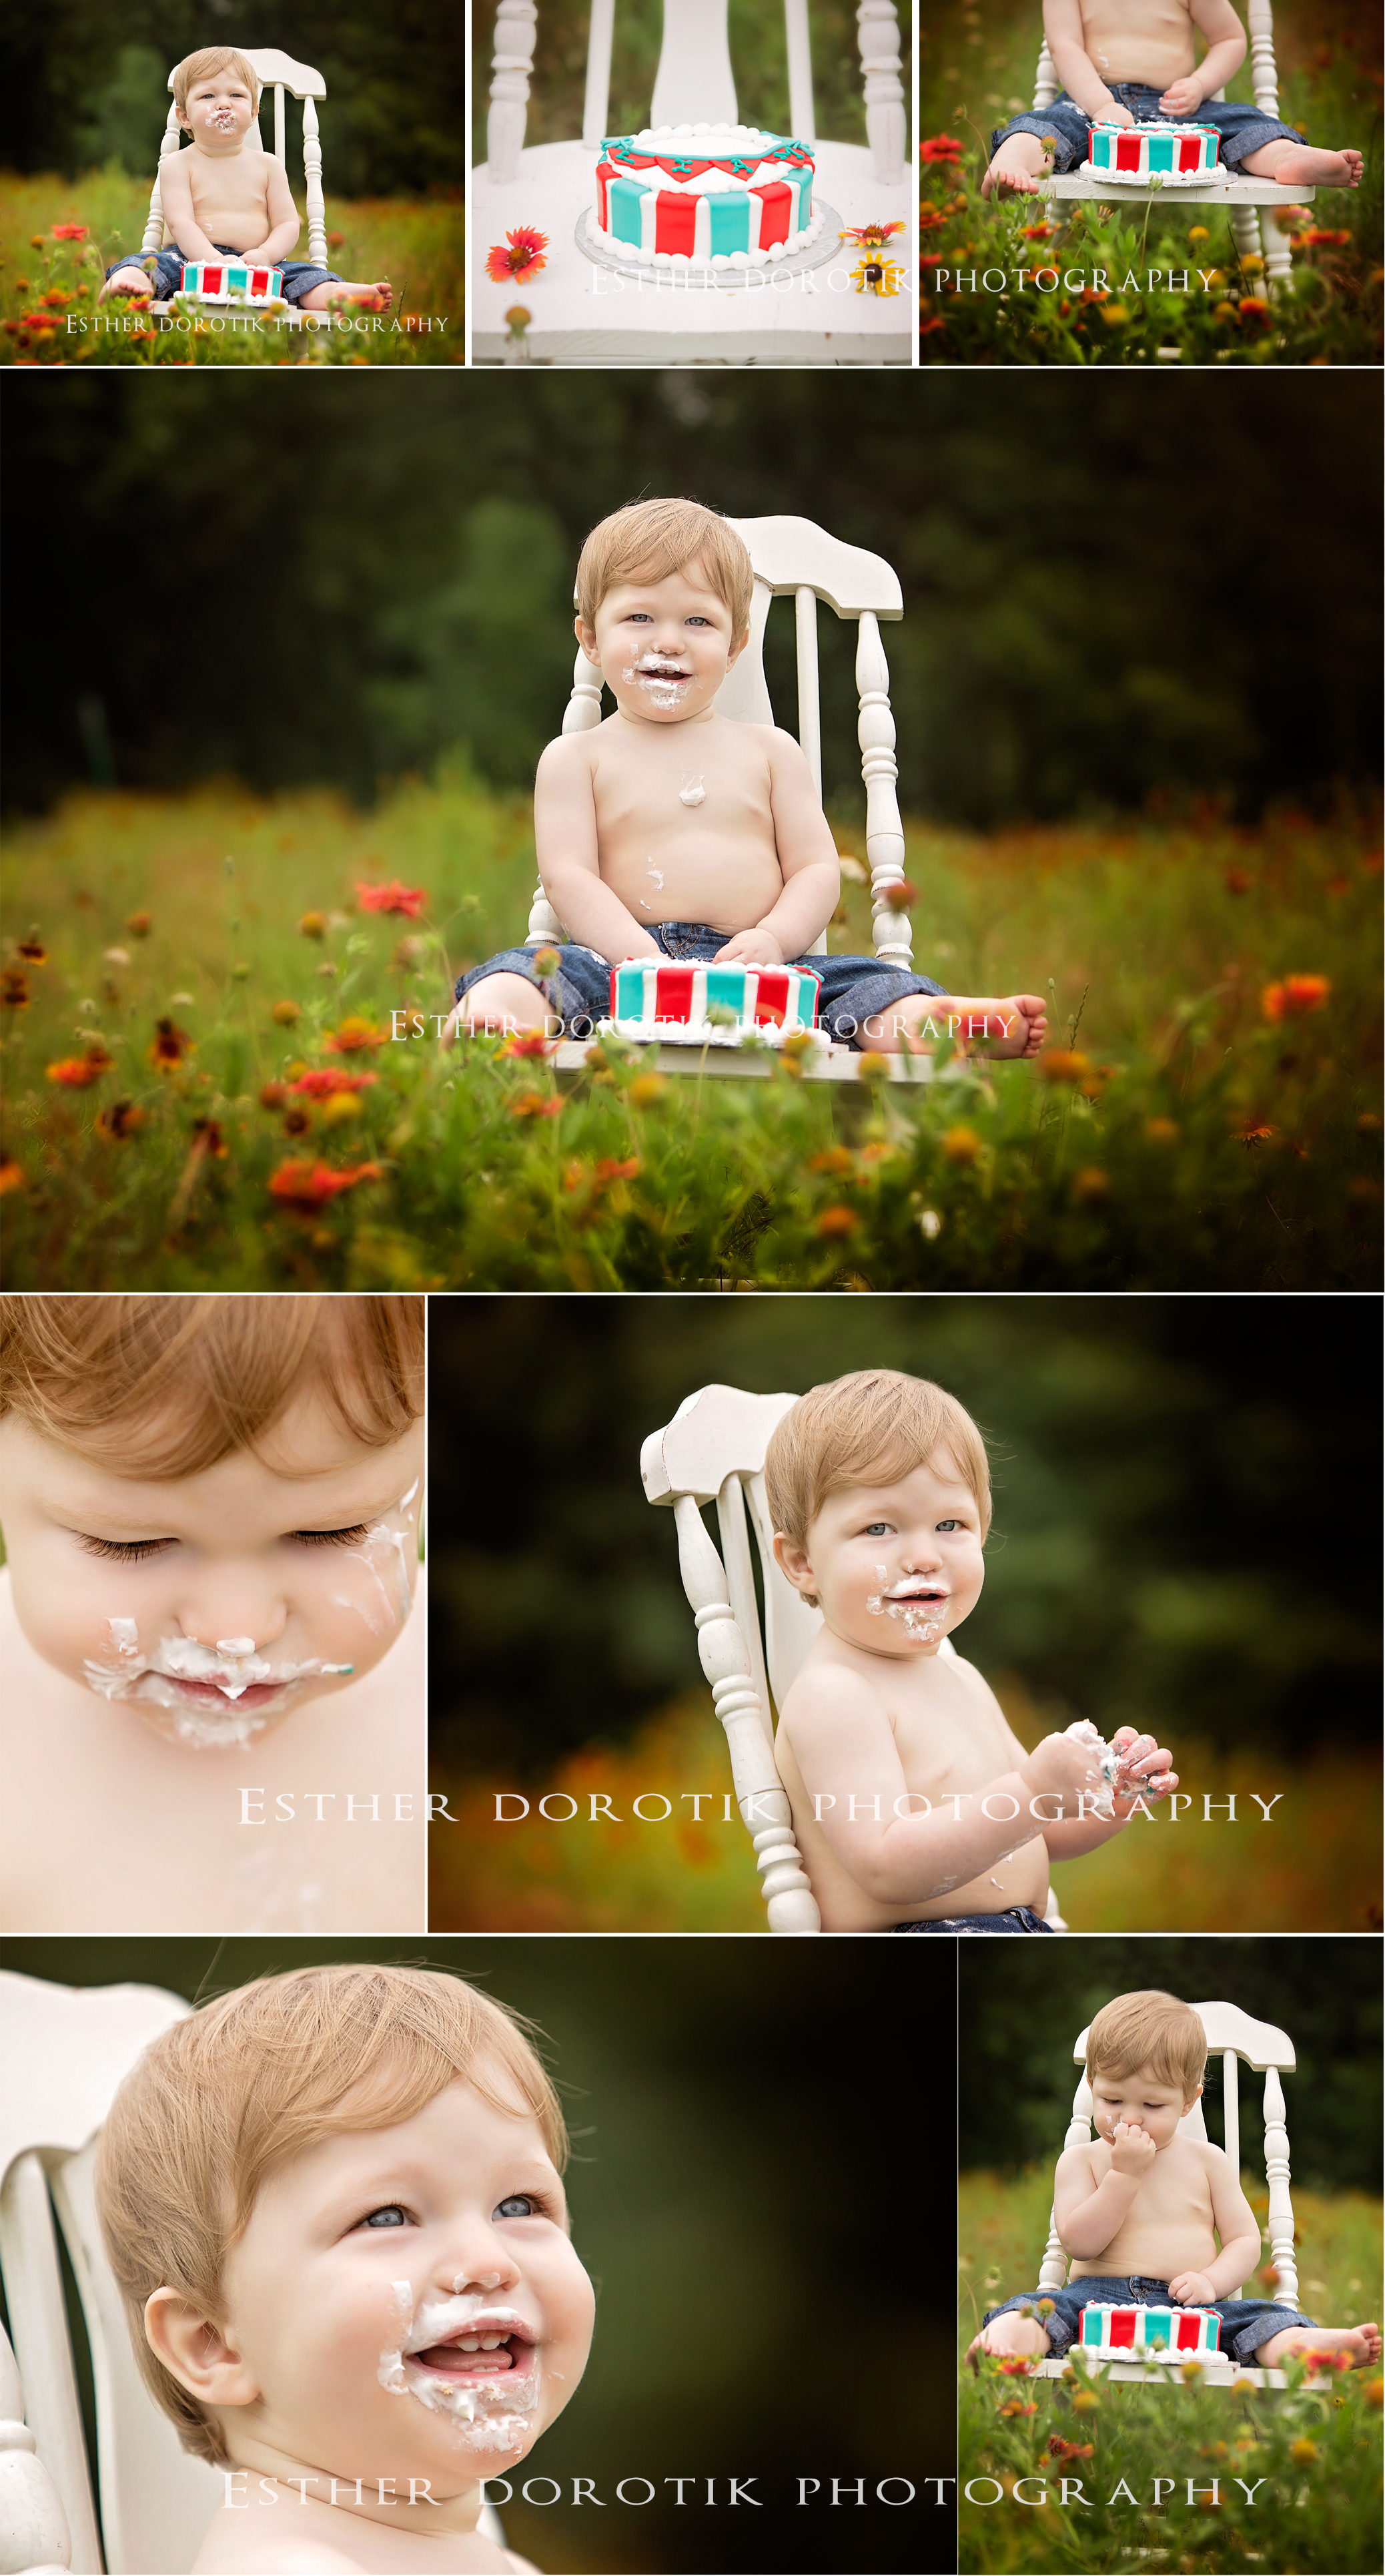 one-year-old-cake-smash-photo-session-by-Flower-mound-baby-photographer